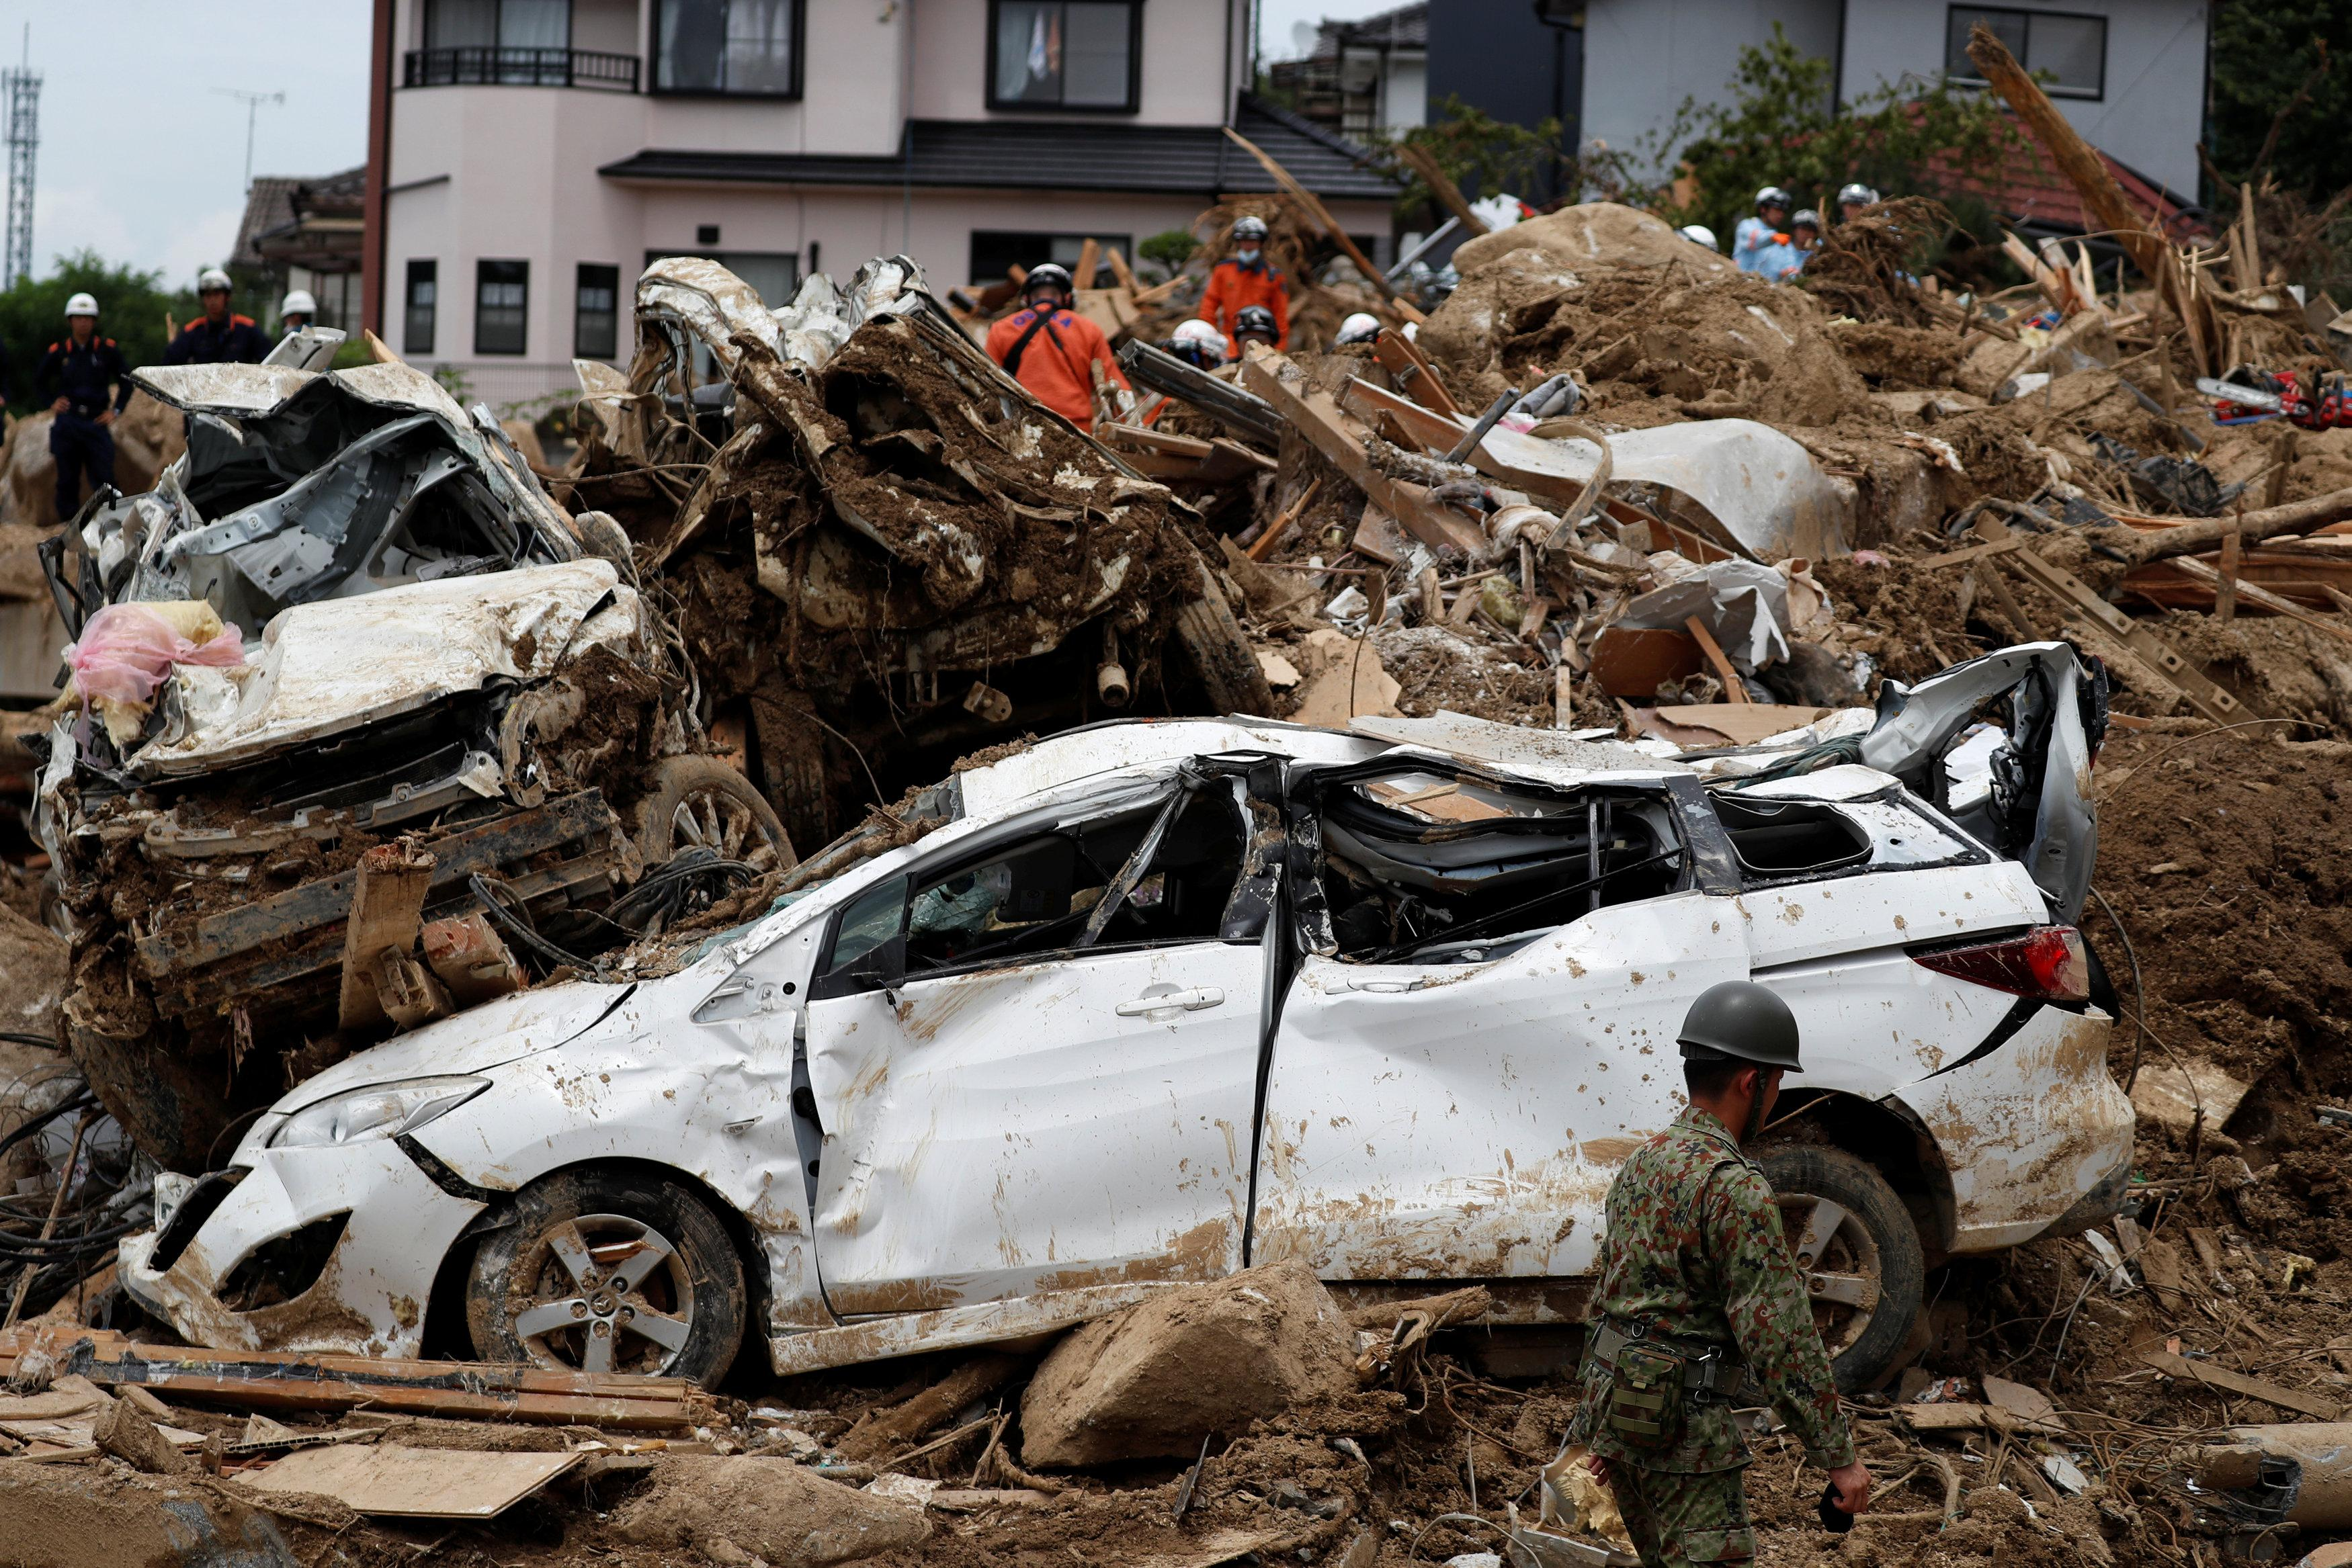 Rescue workers conduct search and rescue operations at a landslide site caused by heavy rain in Kumano Town, Hiroshima Prefecture, western Japan, July 11, 2018. Issei Kato